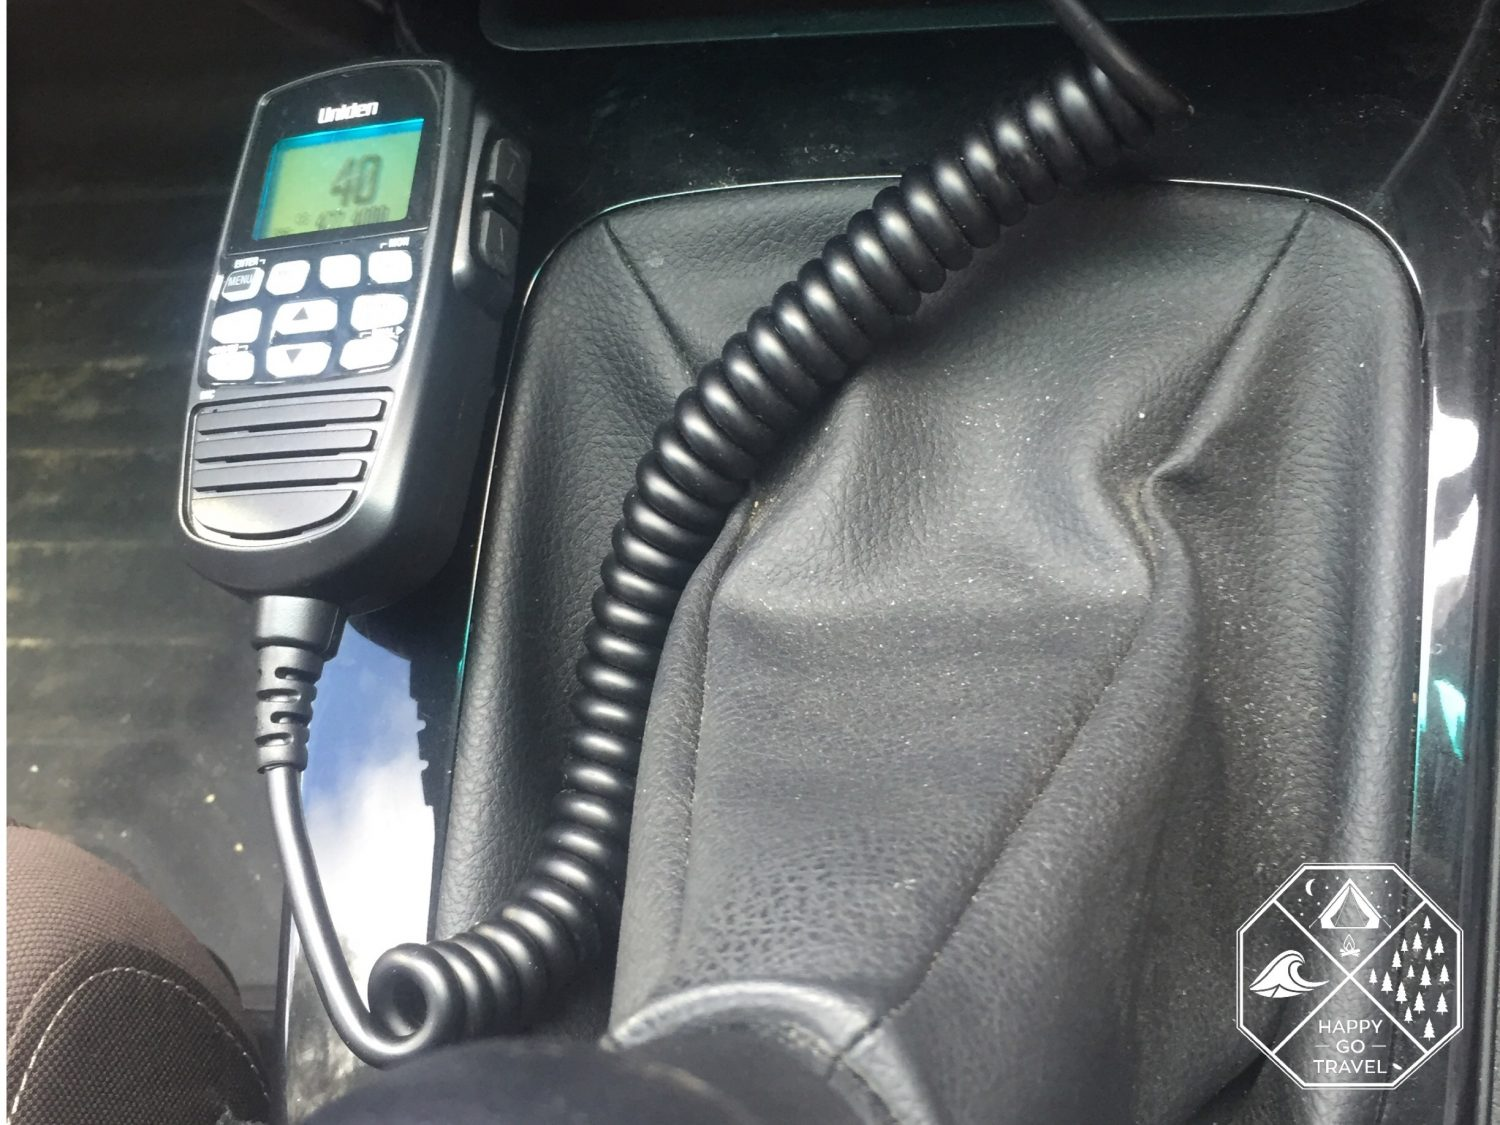 10 Essential Tips For Safe 4wding | 2way radio in manual car